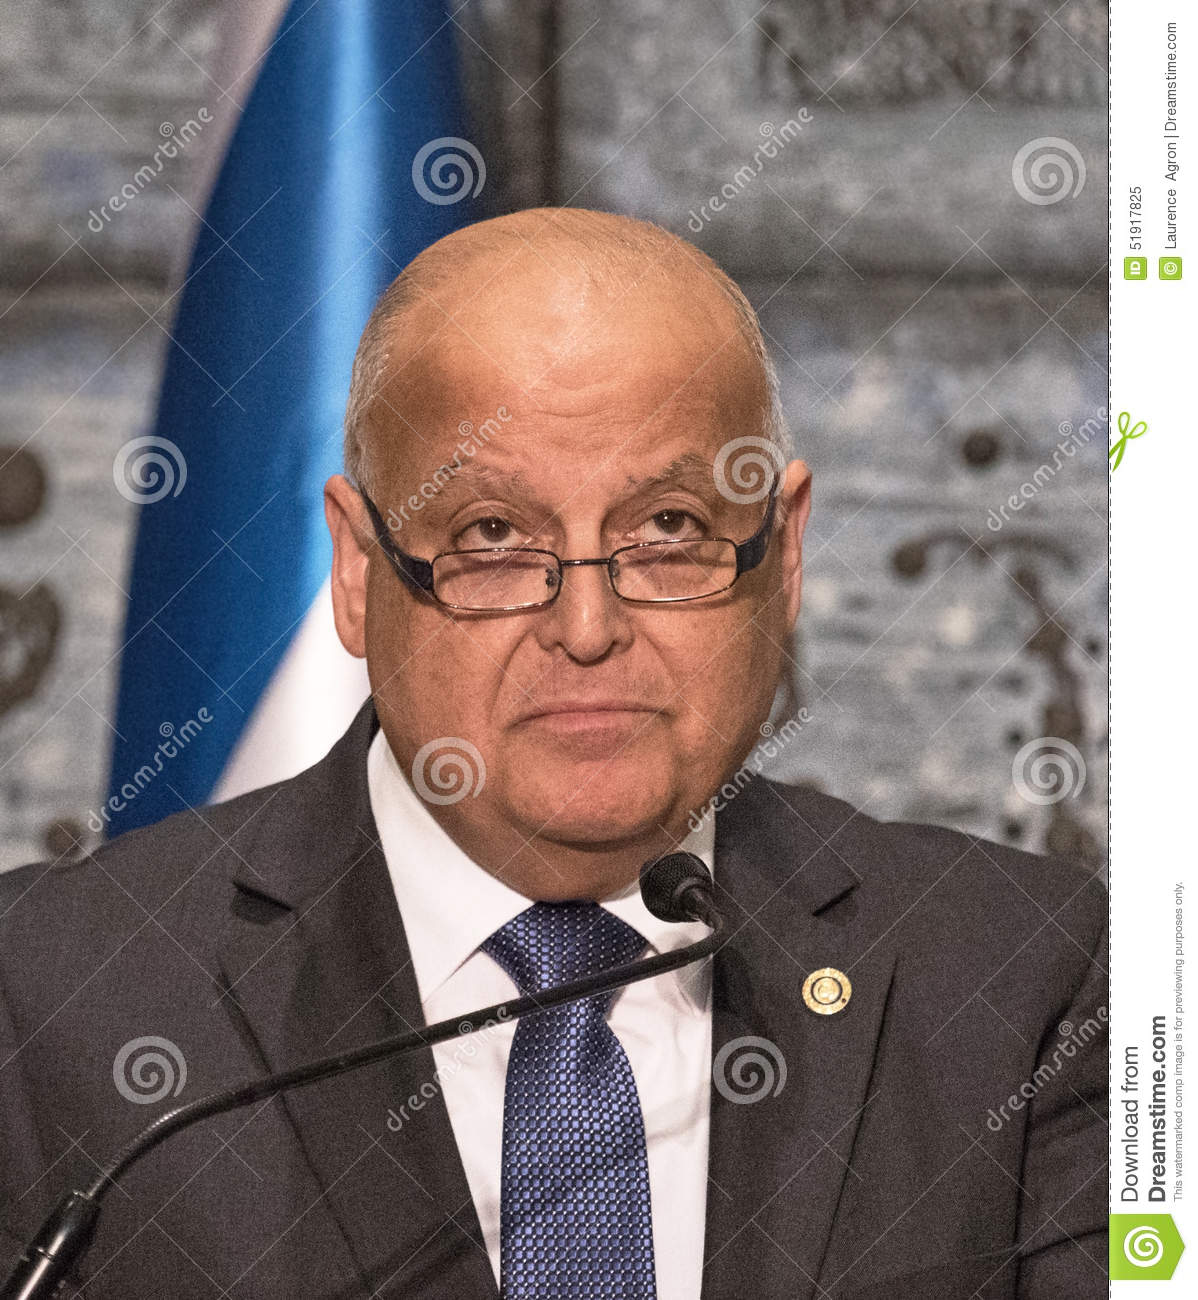 The Honorable Judge Salim Joubran, chairman of the Central Elections Committee, presents the official result of the election for the 20th Knesset to the ... - israeli-parliamentary-election-honorable-judge-salim-joubran-chairman-central-elections-committee-presents-official-51917825